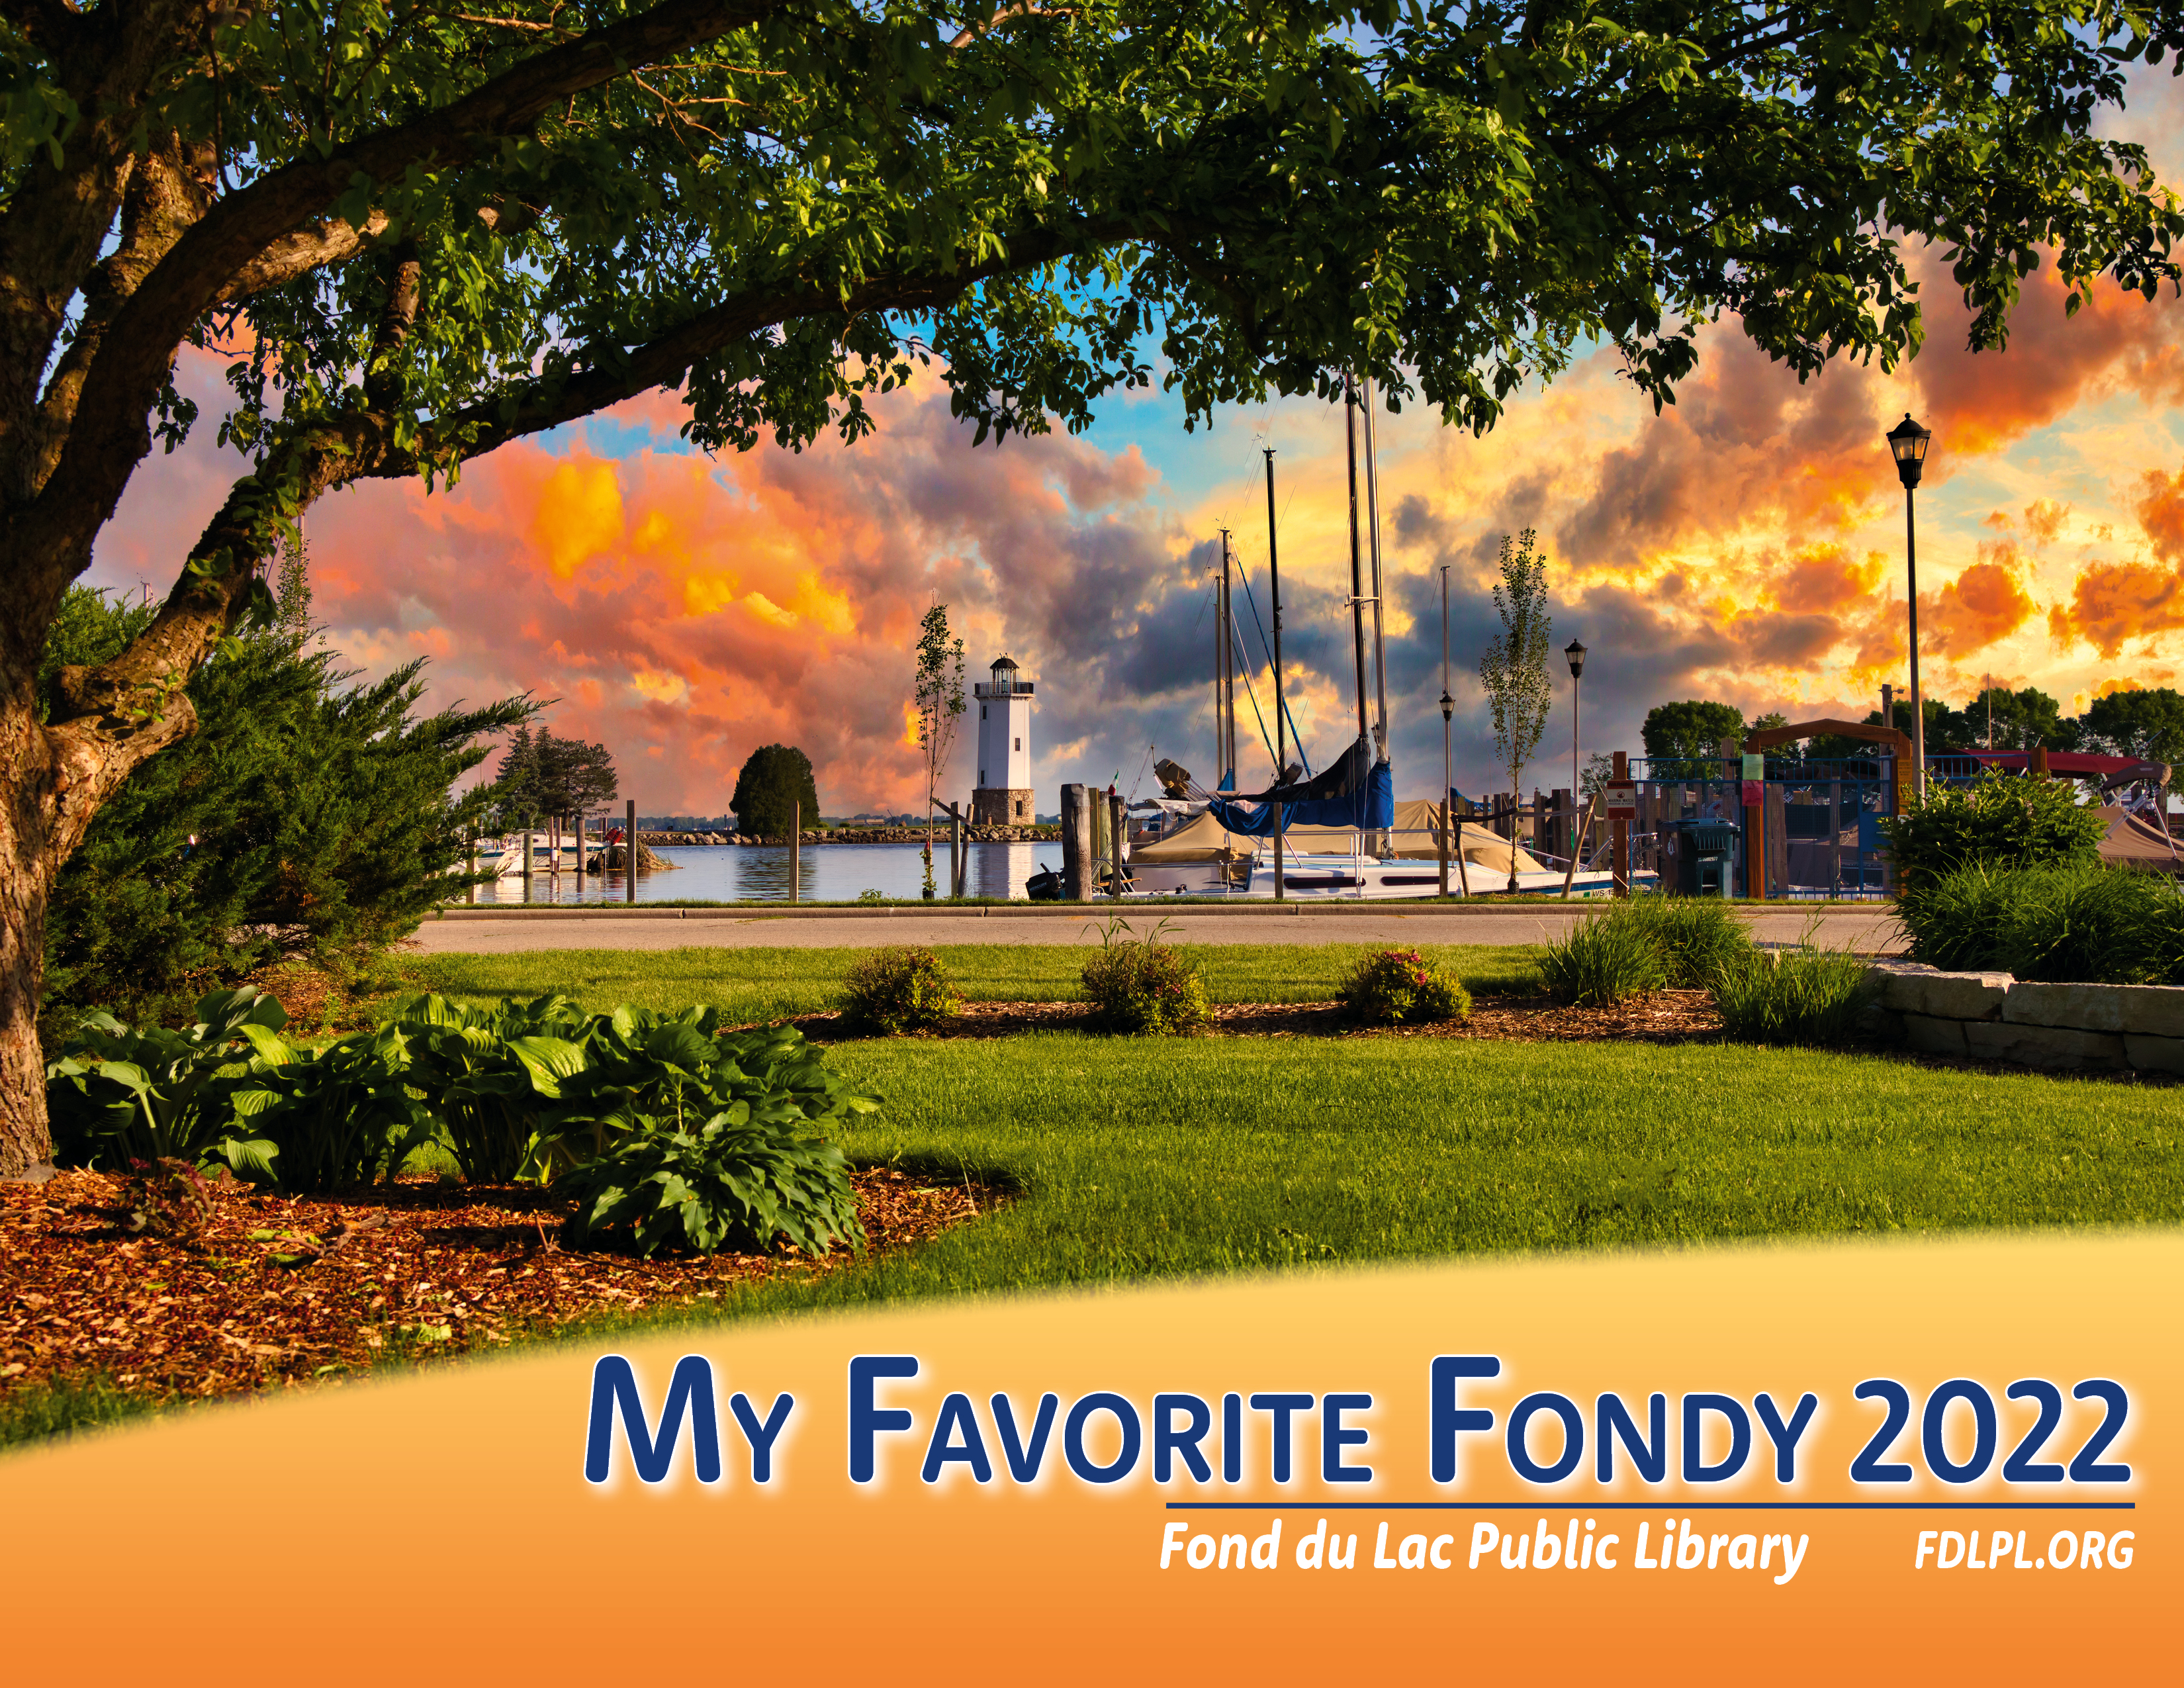 My Favorite Fondy 2022 calendars now are on sale